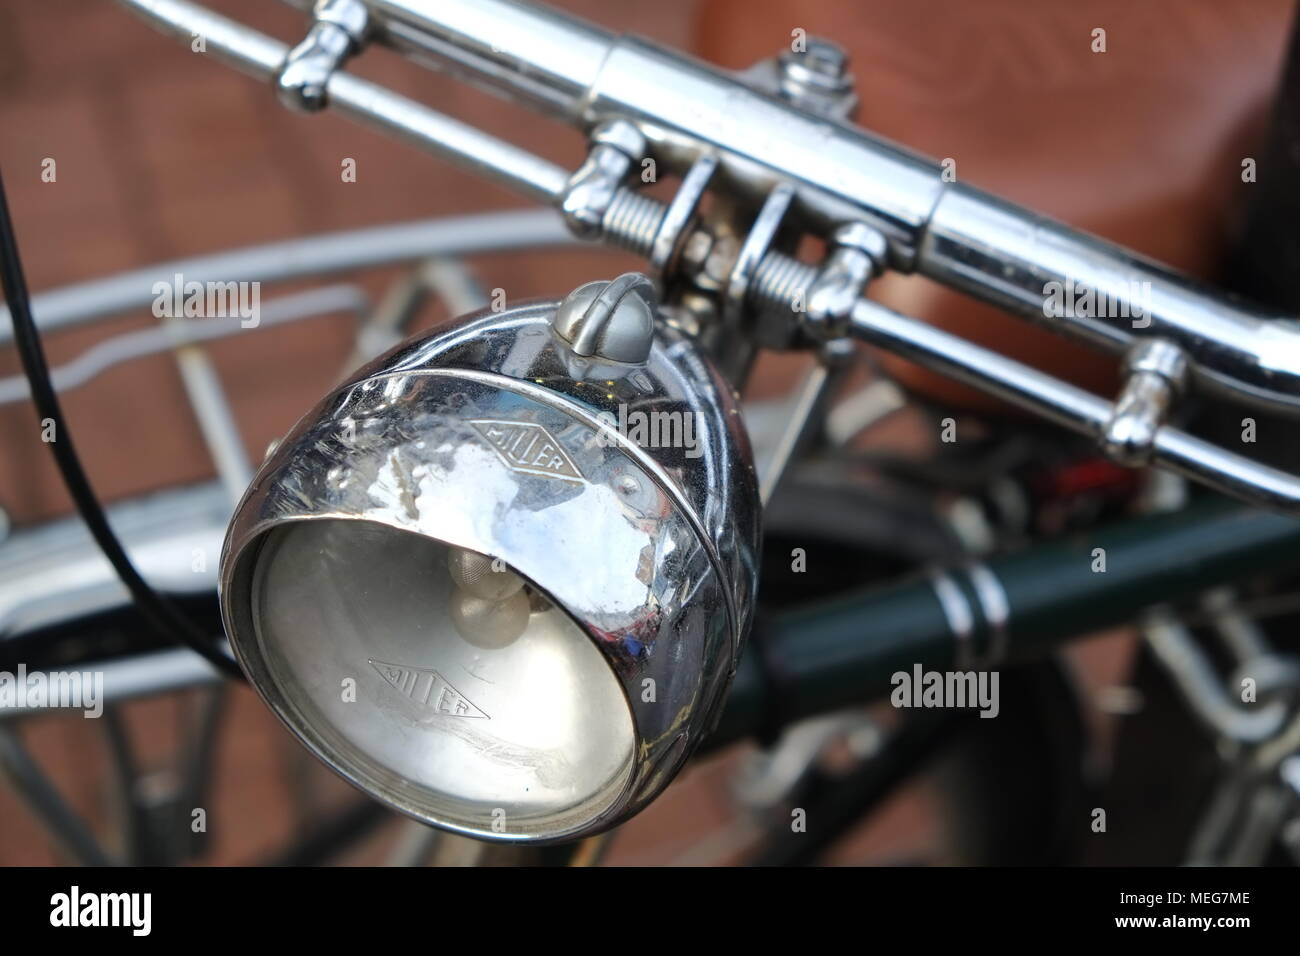 Vintage Bicycle detail showing headlamp with bike framework in the background. - Stock Image